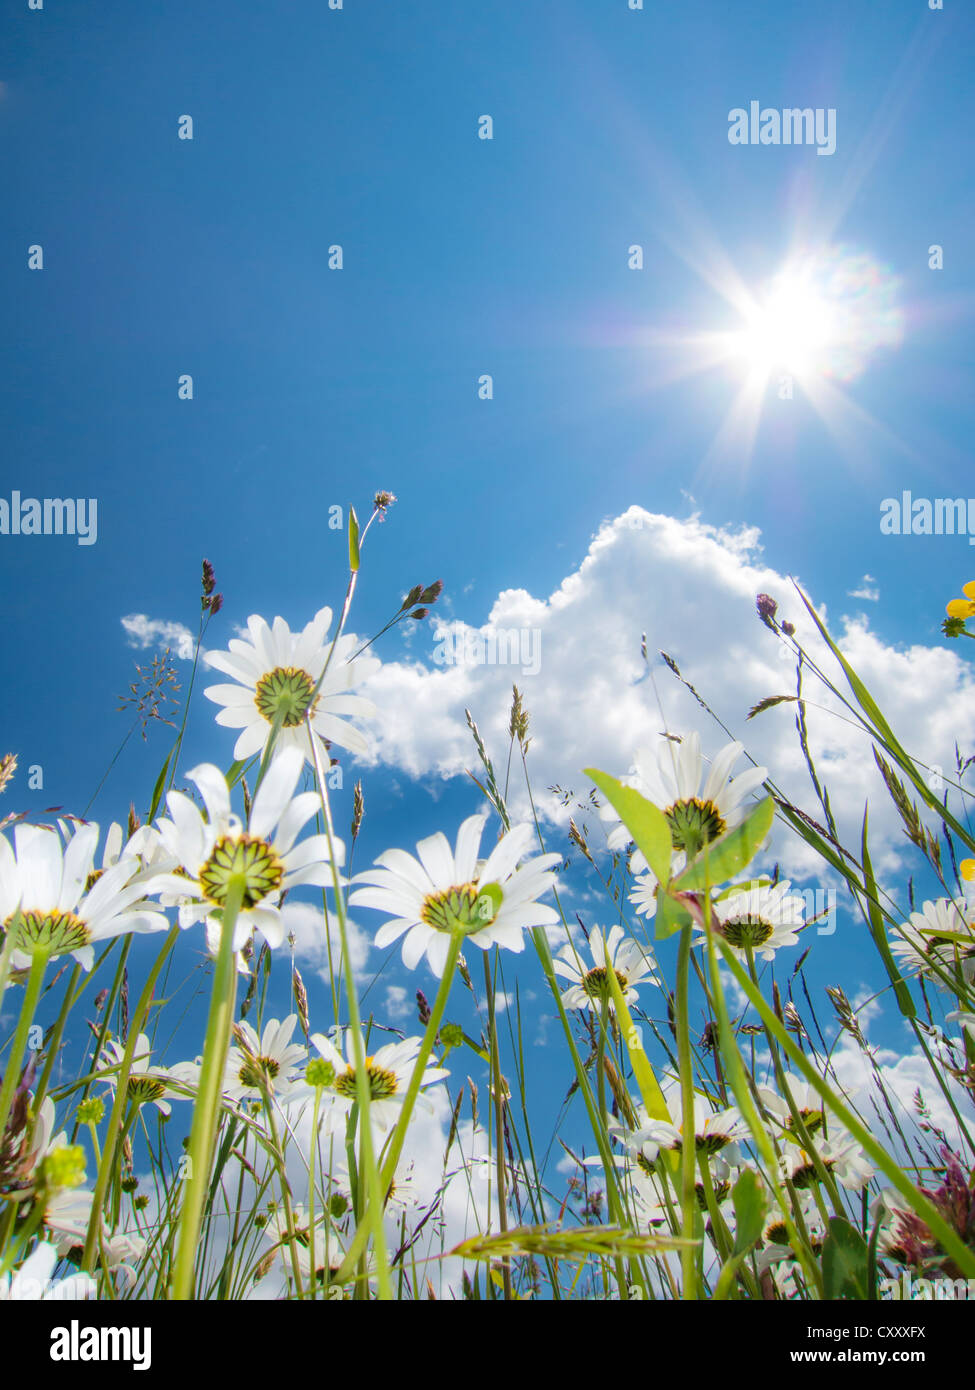 Daisies (Leucanthemum vulgare) from below, flower meadow, worm's eye view, blue summer sky with sun and rays - Stock Image